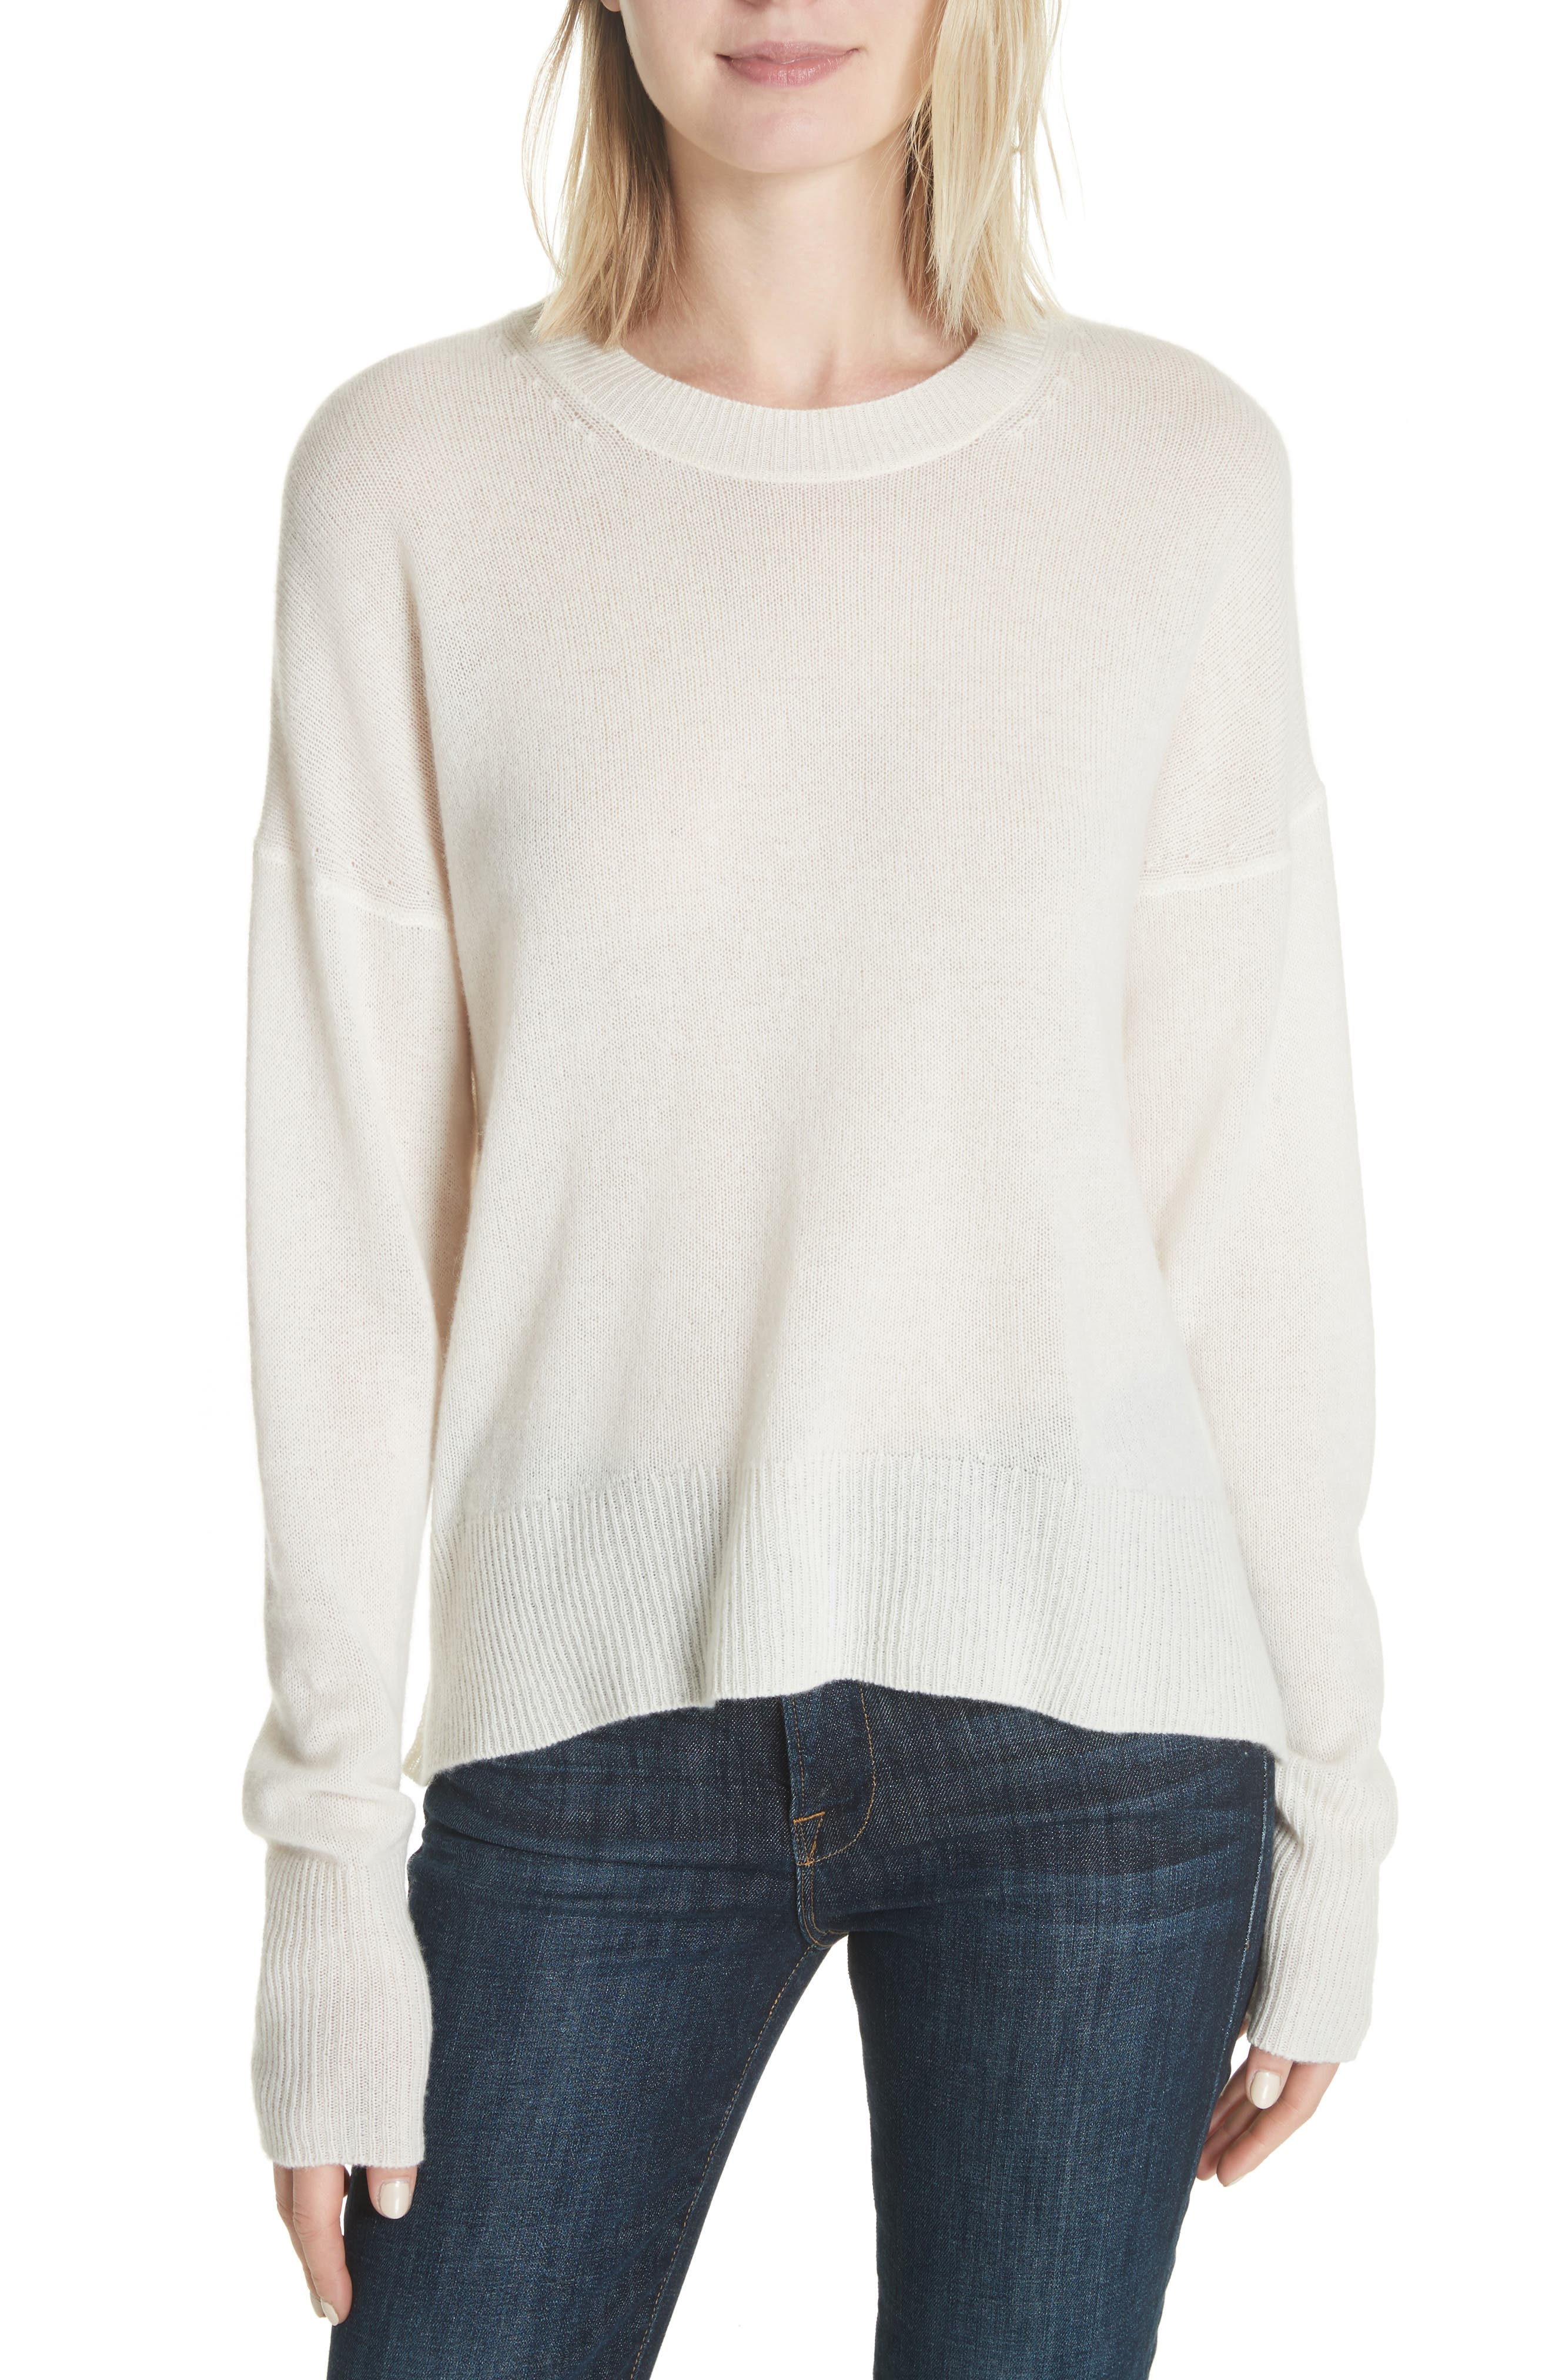 Karenia L Cashmere Sweater,                         Main,                         color, Ivory